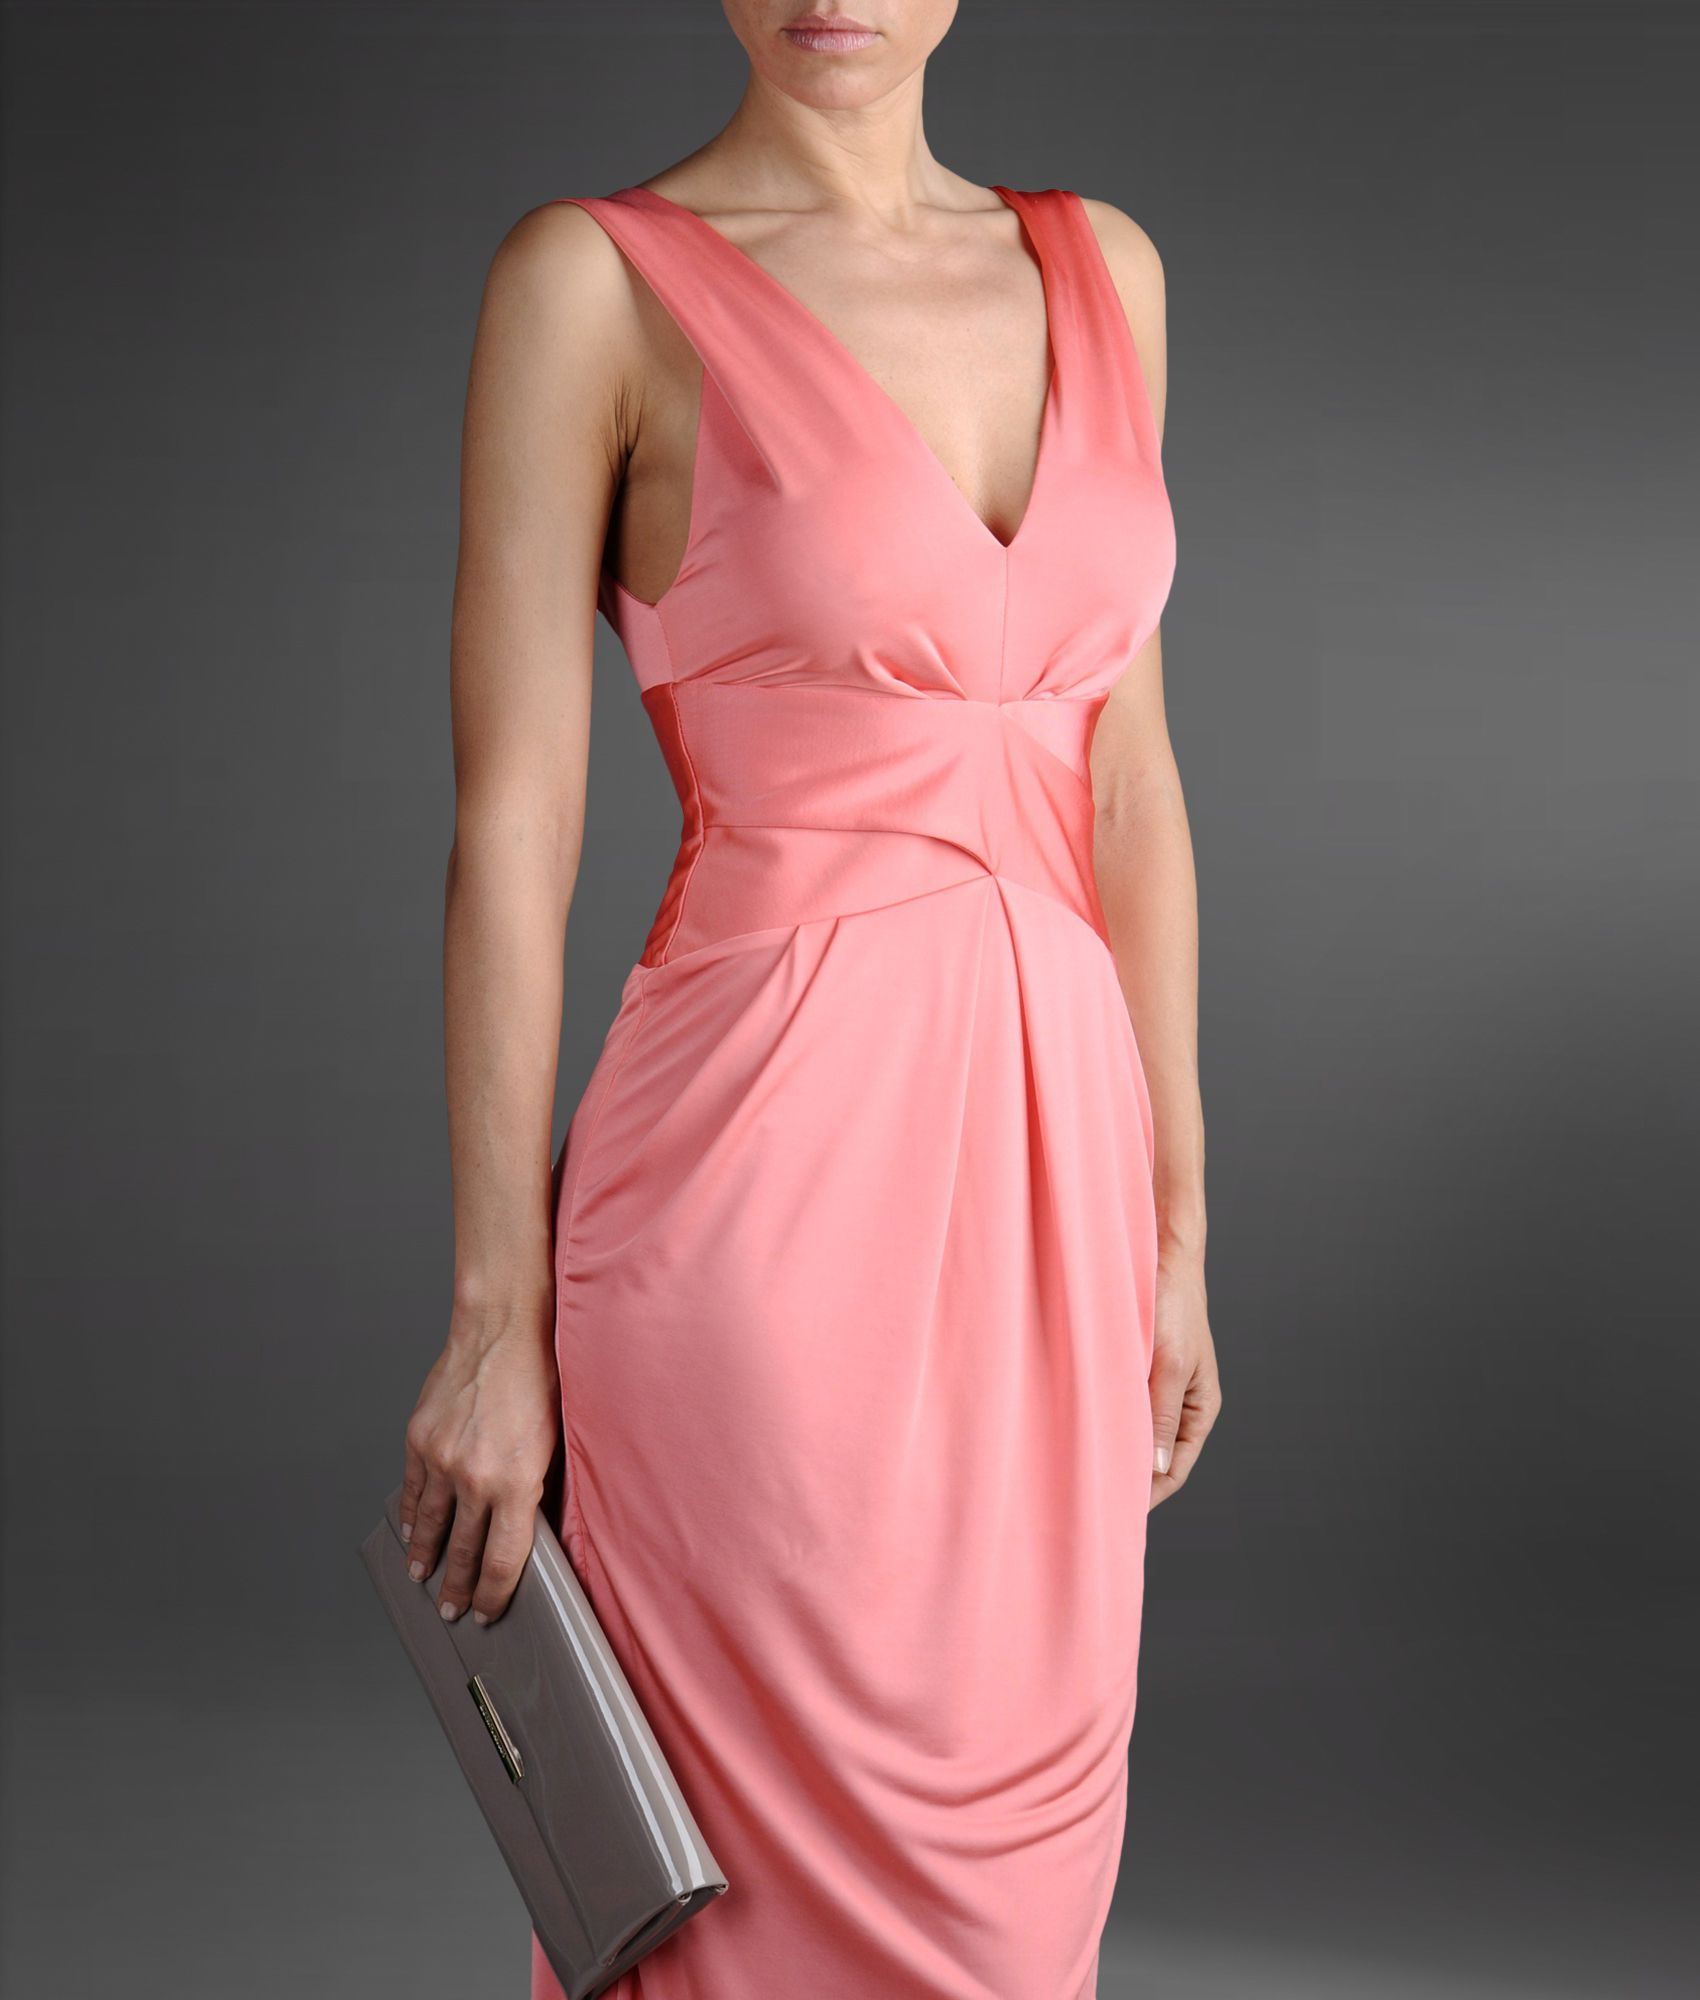 Emporio armani Long Dress in Pink | Lyst